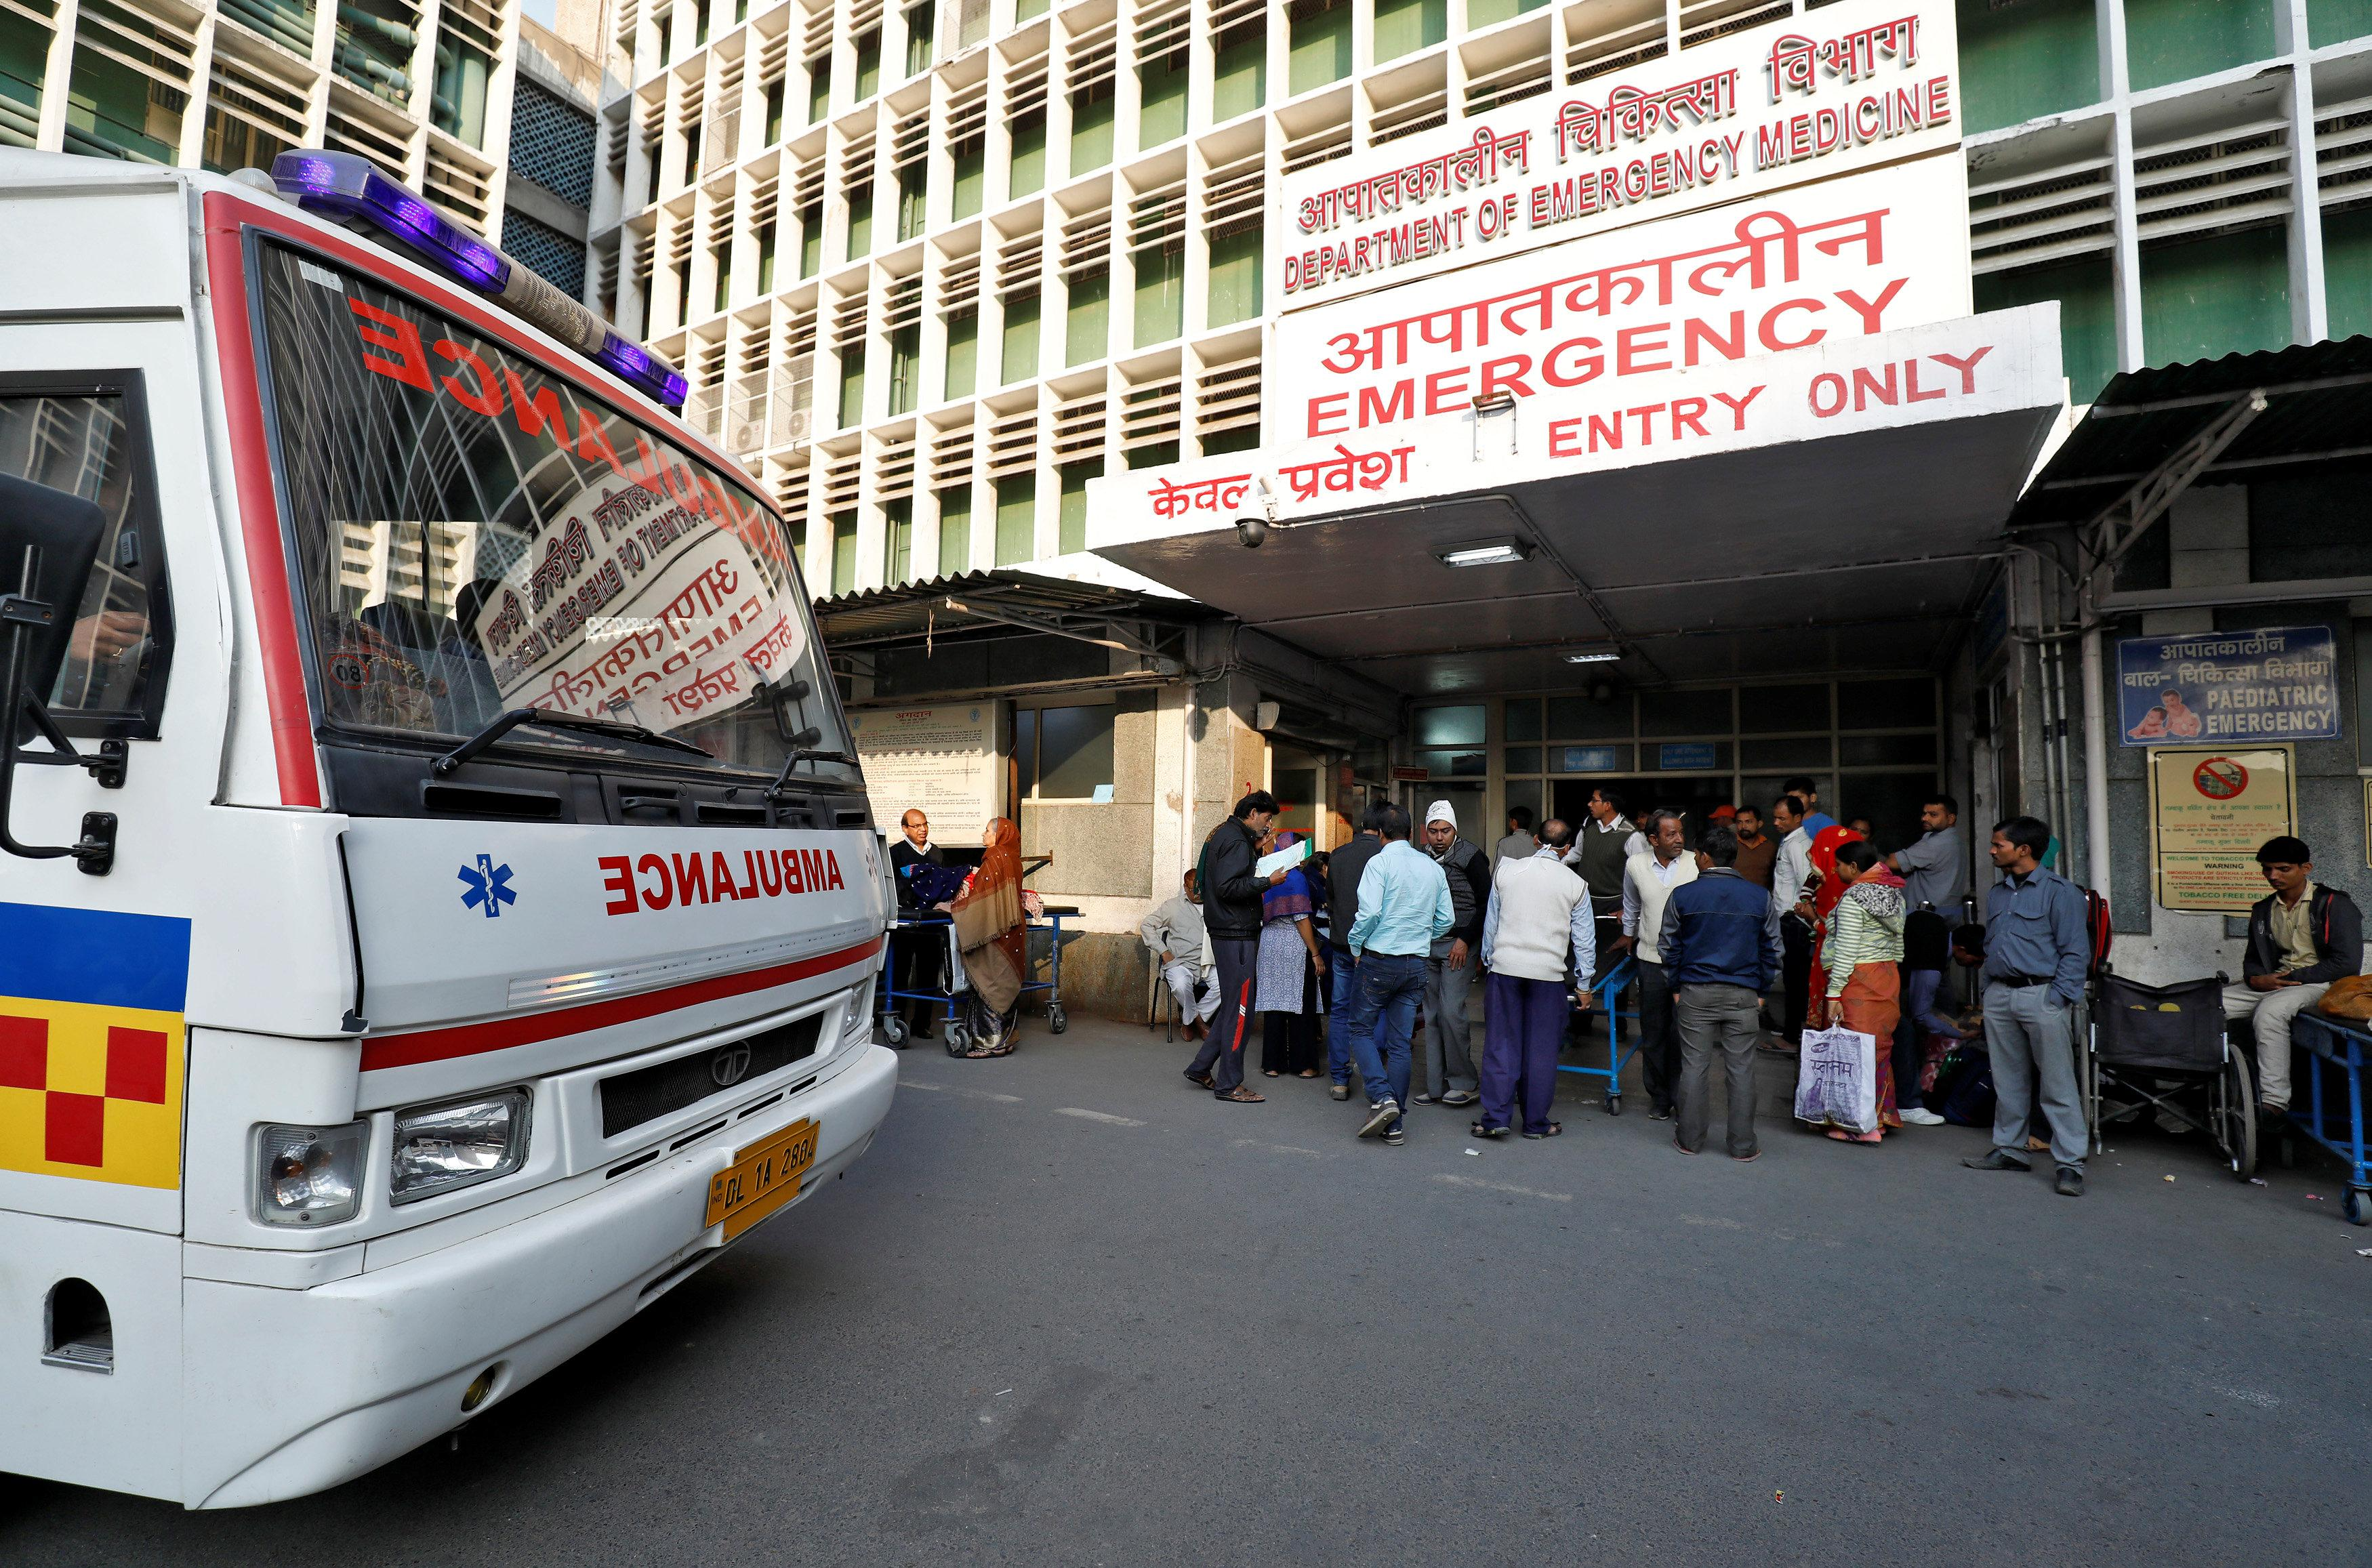 An ambulance arrives as people stand at the entrance of the emergency department of a government-run hospital in New Delhi, India, November 22, 2017.   Picture taken November 22, 2017.  Saumya Khandelwal